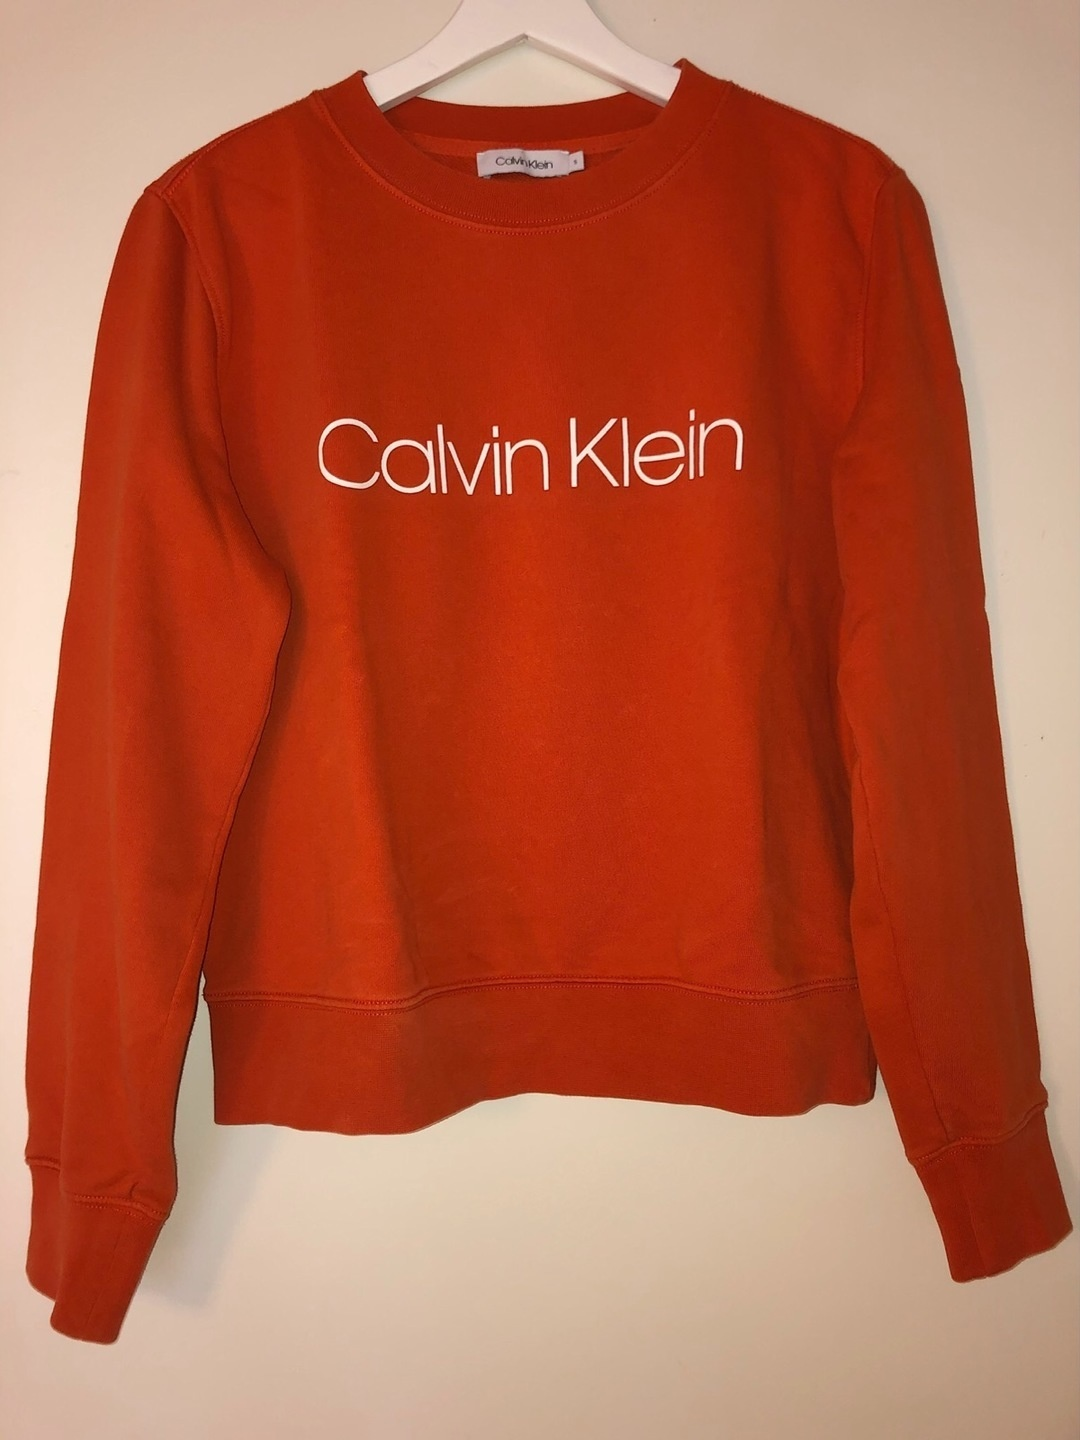 Women's jumpers & cardigans - CALVIN KLEIN photo 2